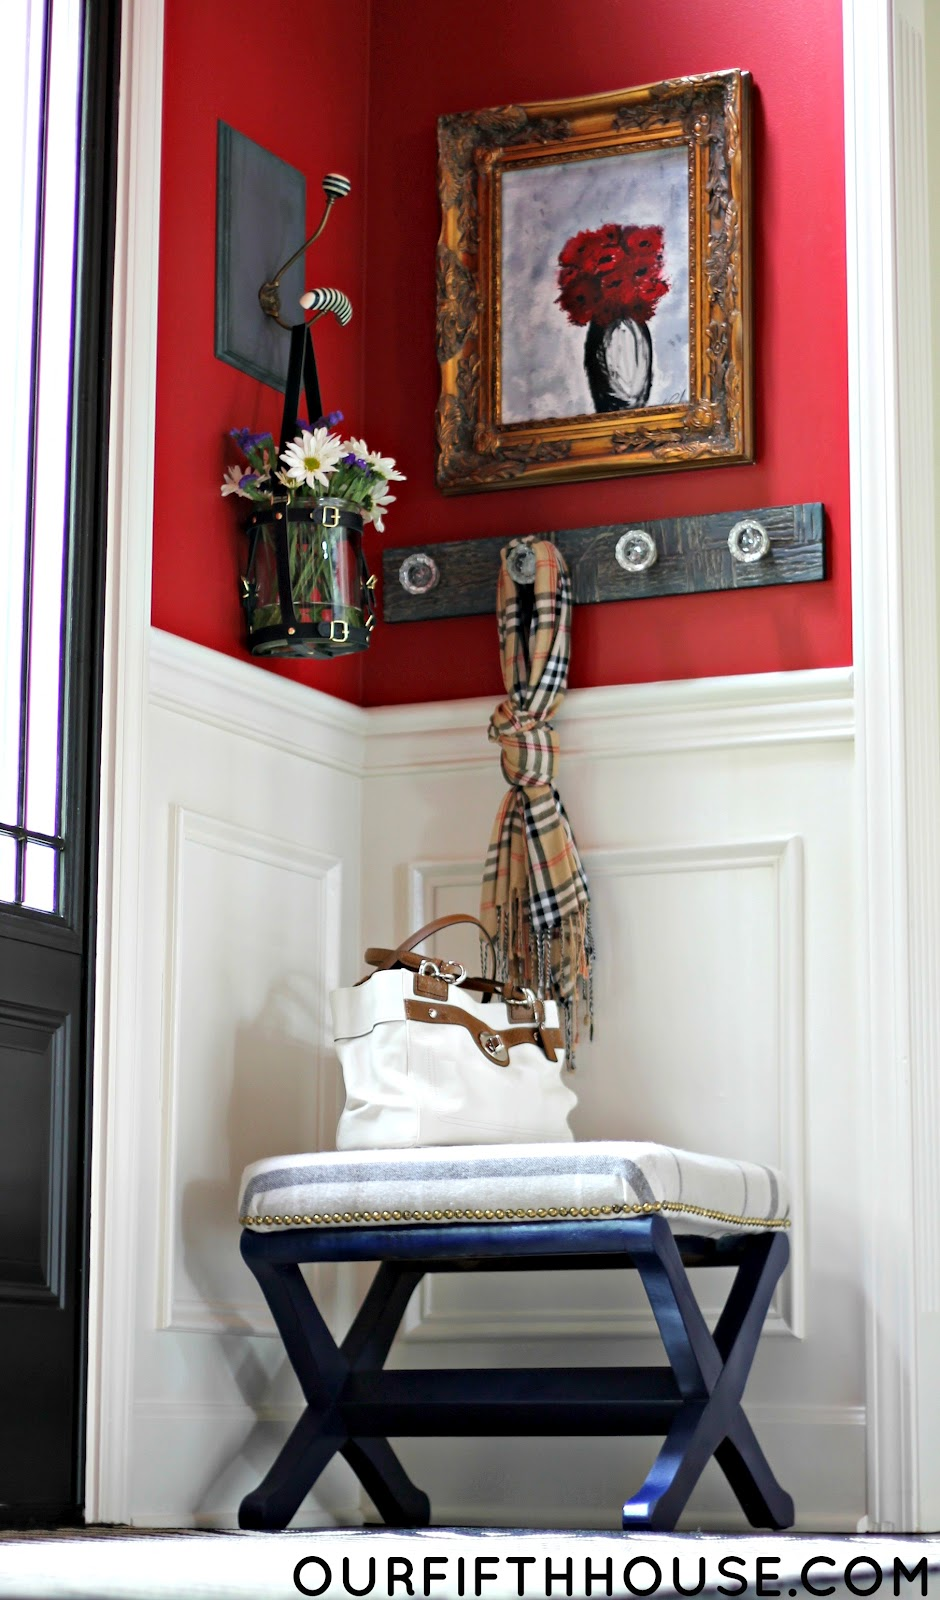 Small Foyer Chair : Our fifth house turning a small ottoman into mini bench